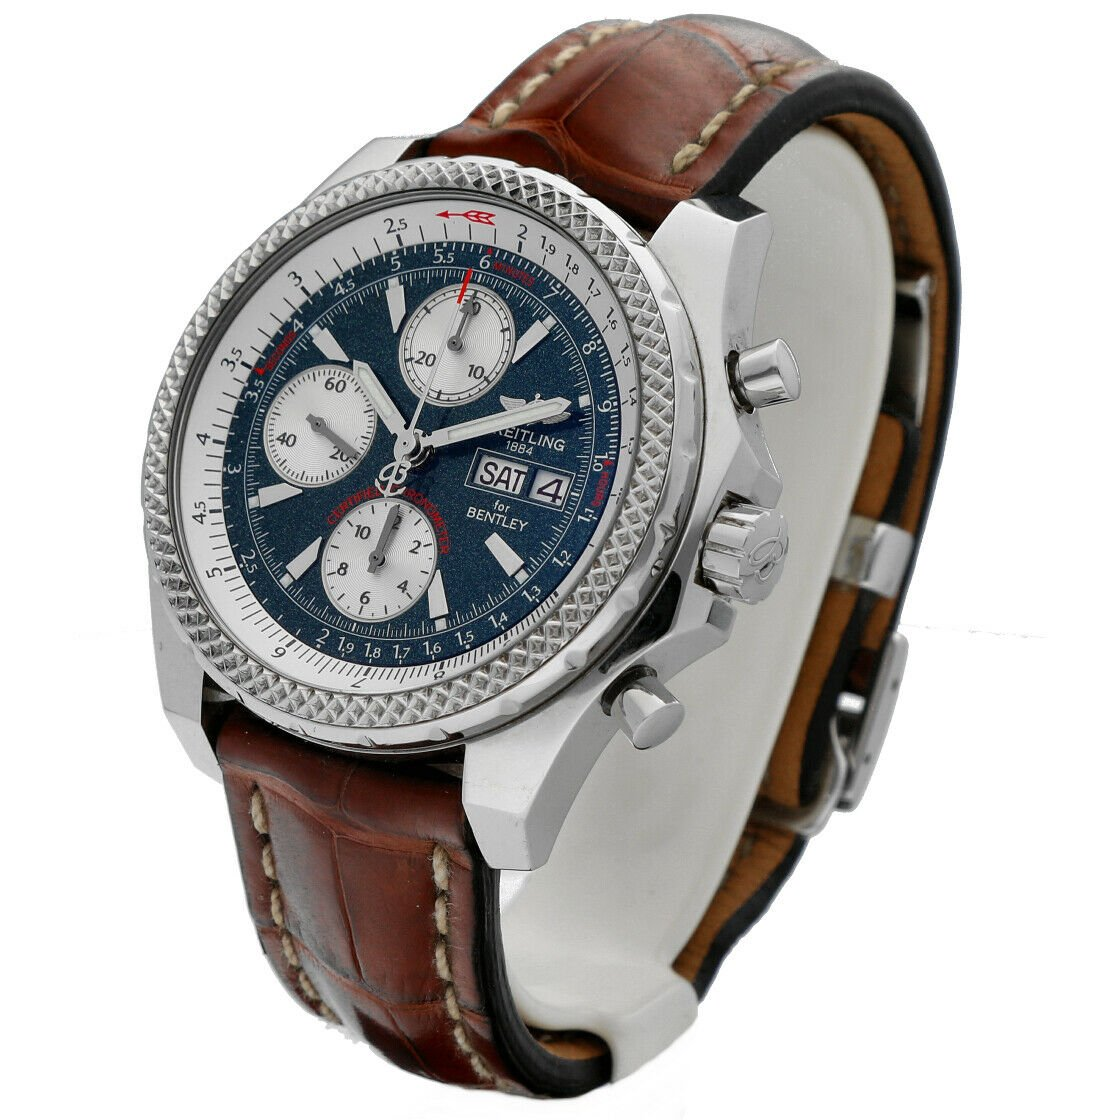 Breitling A13362 Bentley Green Dial 43mm Chrono Leather Automatic Mens Watch 133372522161 2